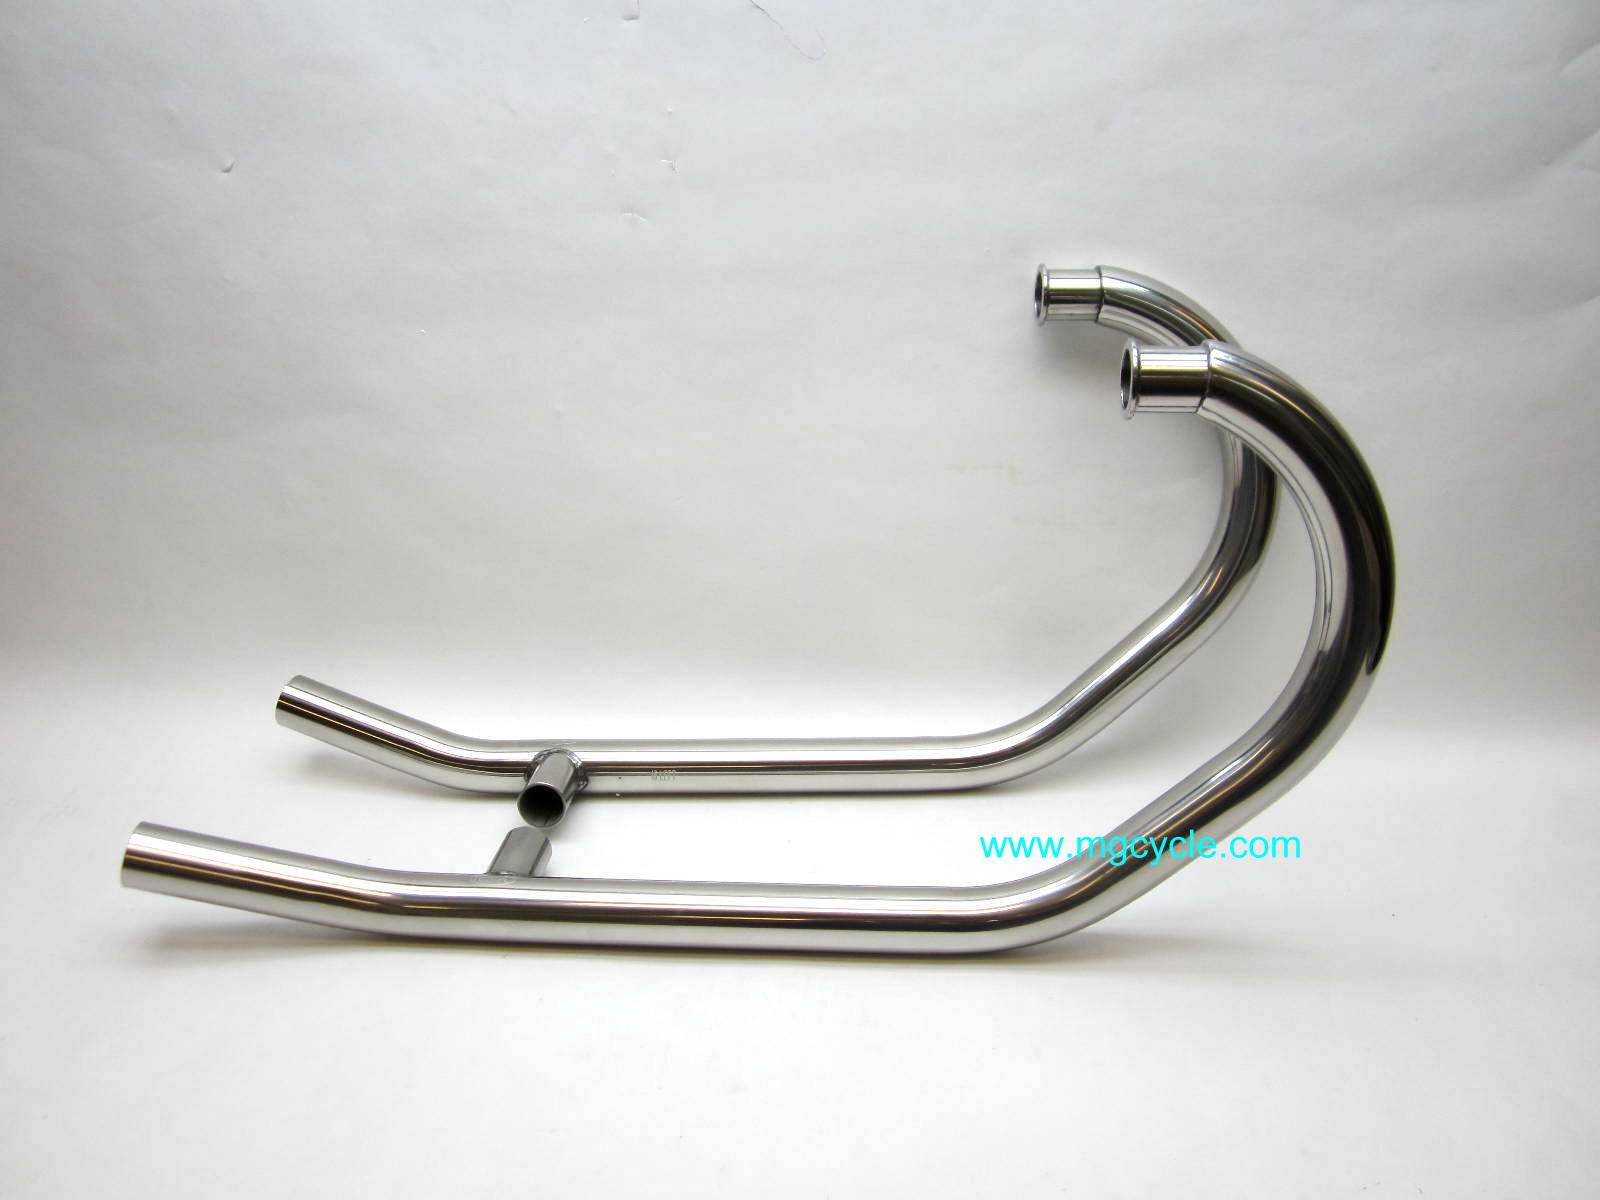 Mistral polished headers, V7 Classic, Stone, Special 2008-2012